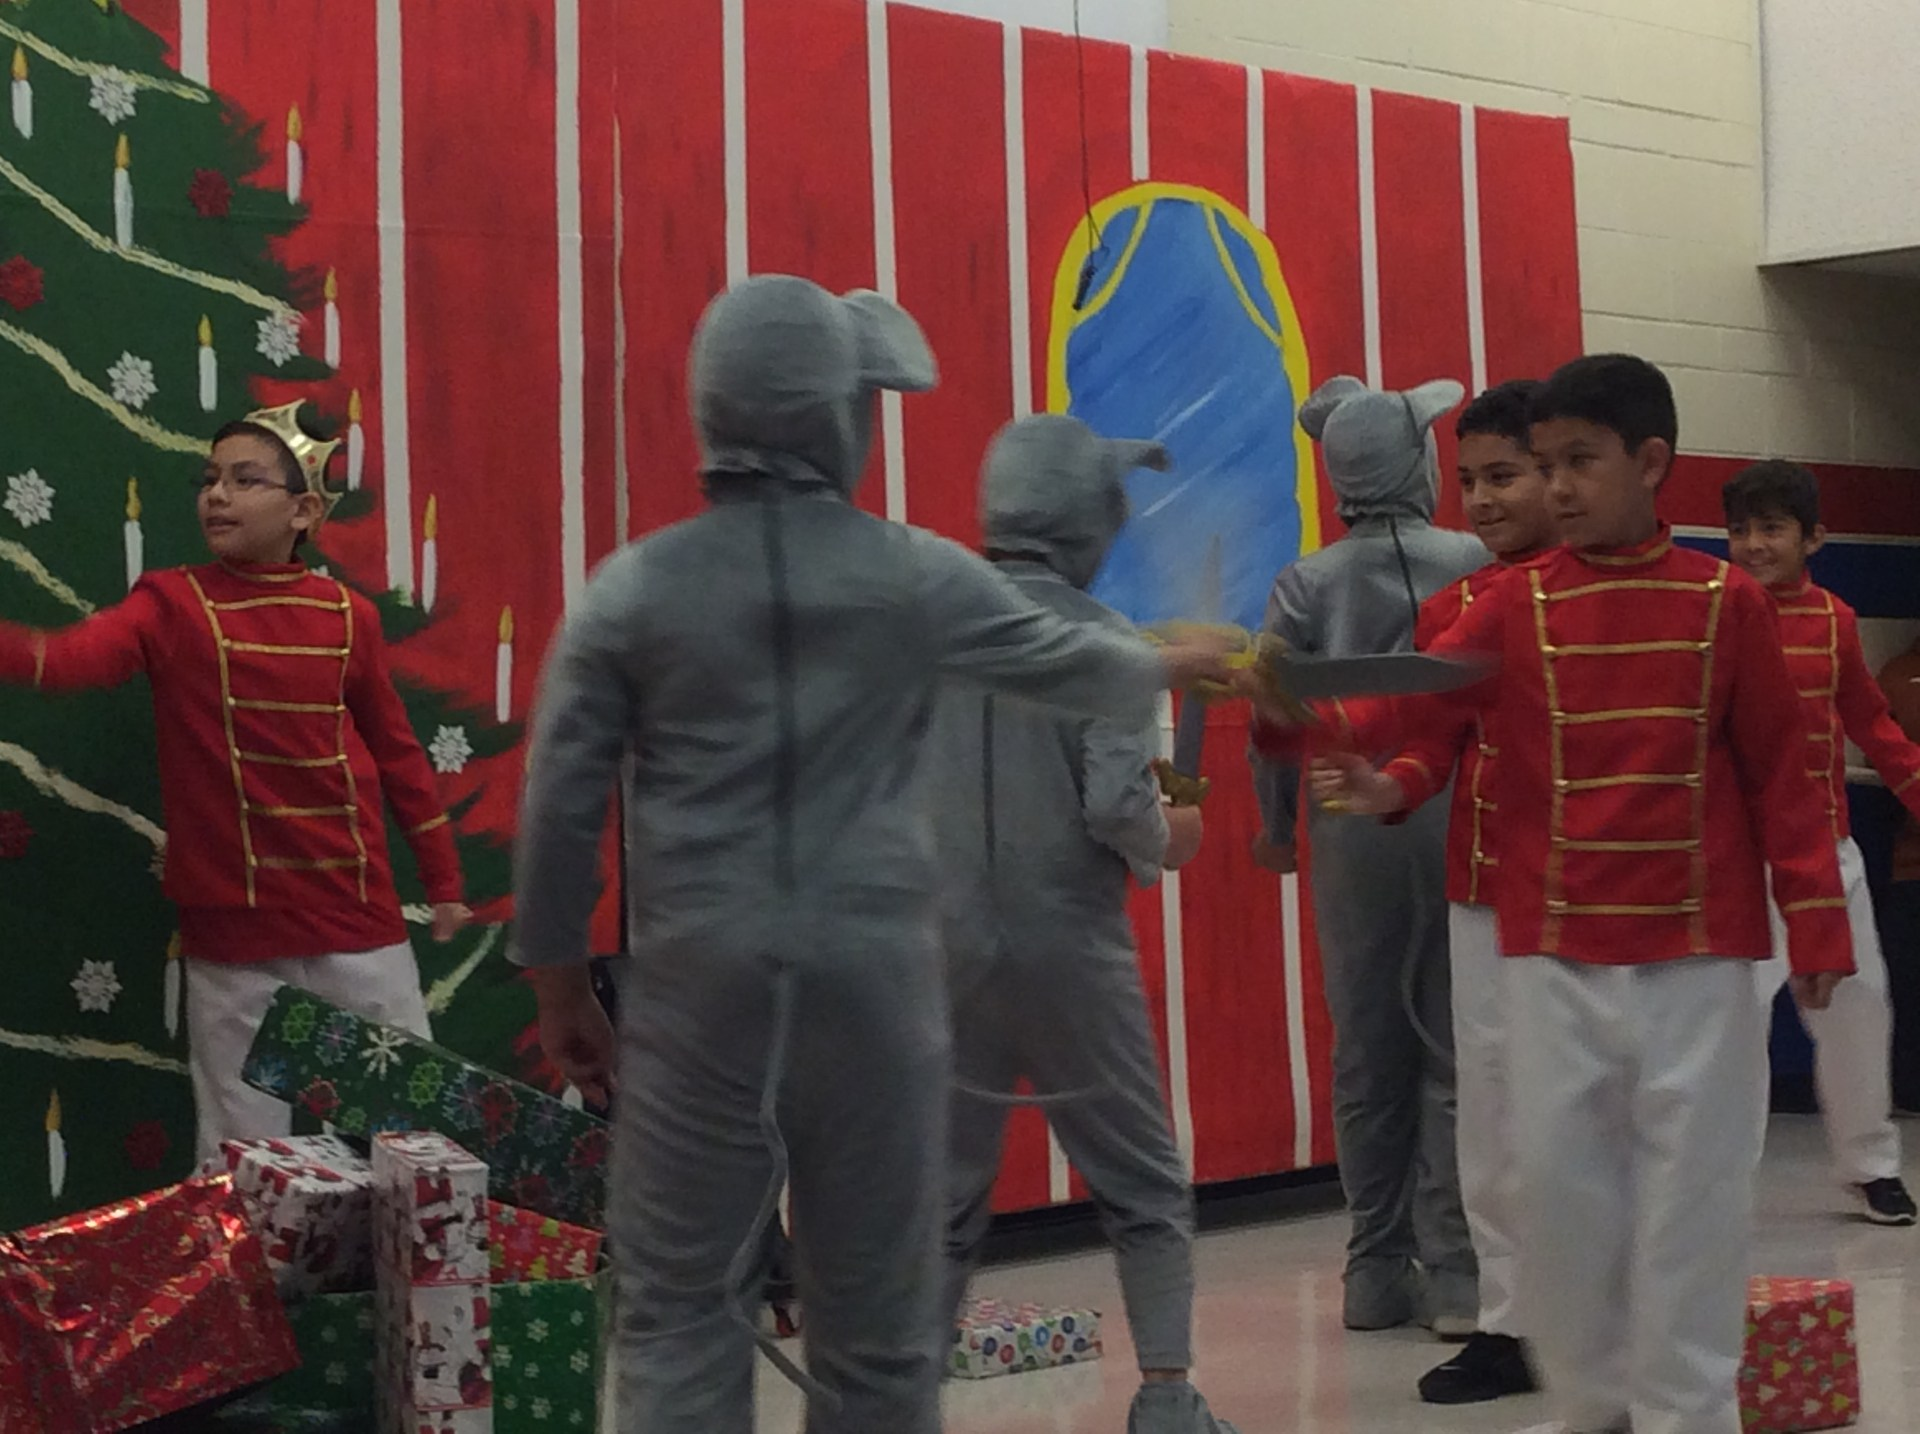 Soldiers and mice characters at sword fight on stage.